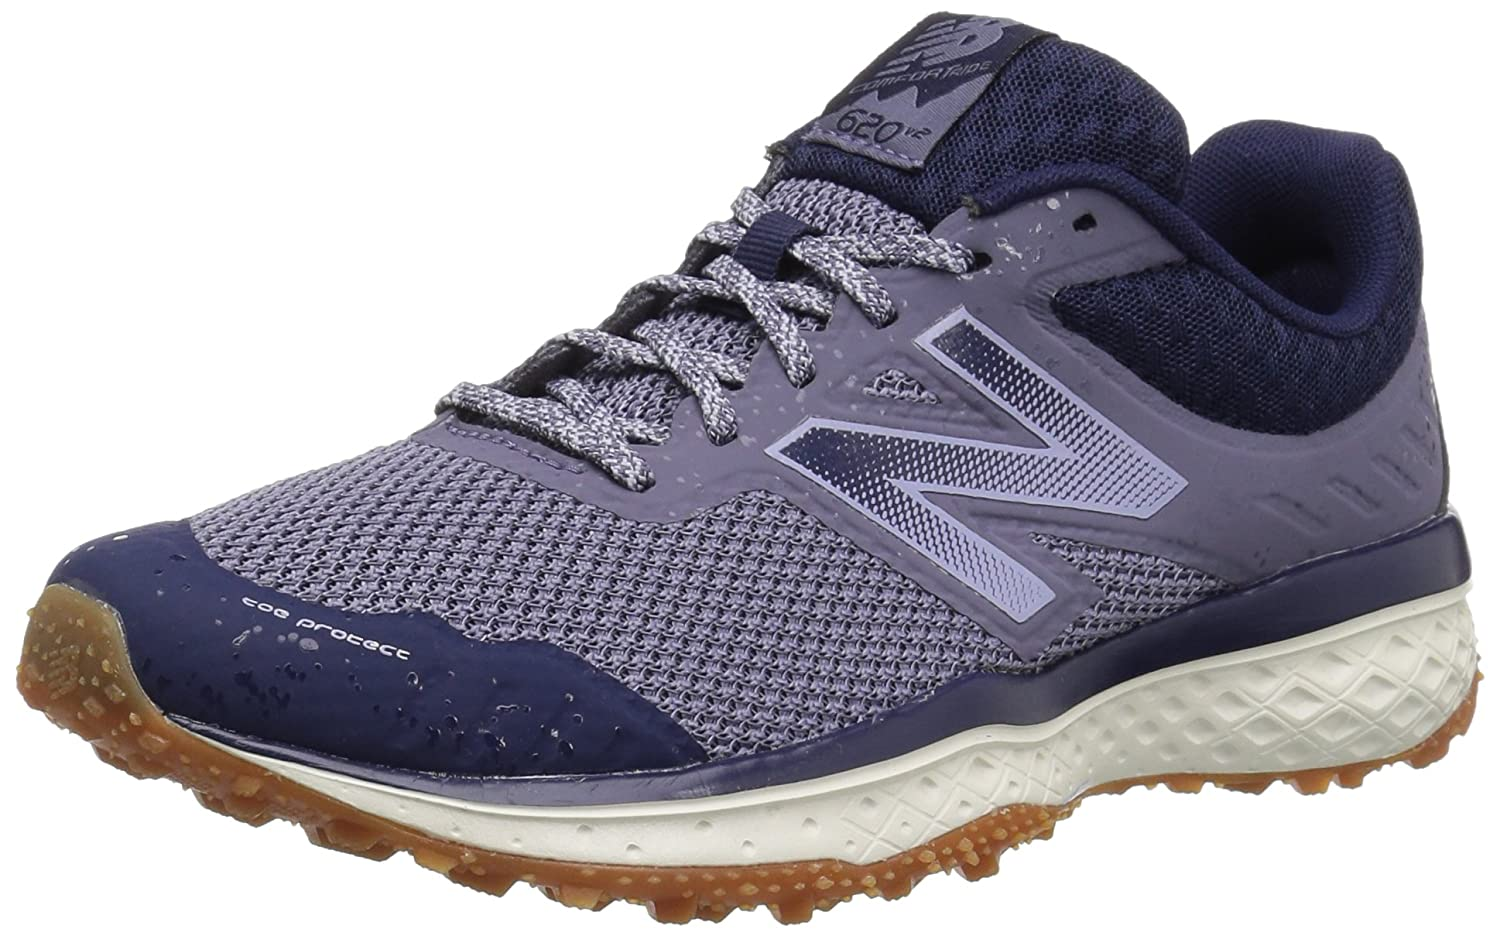 New Balance Women's Cushioning 620v2 Trail Running Shoe B01N97AQ32 5.5 B(M) US|Deep Cosmic Sky/Dark Denim